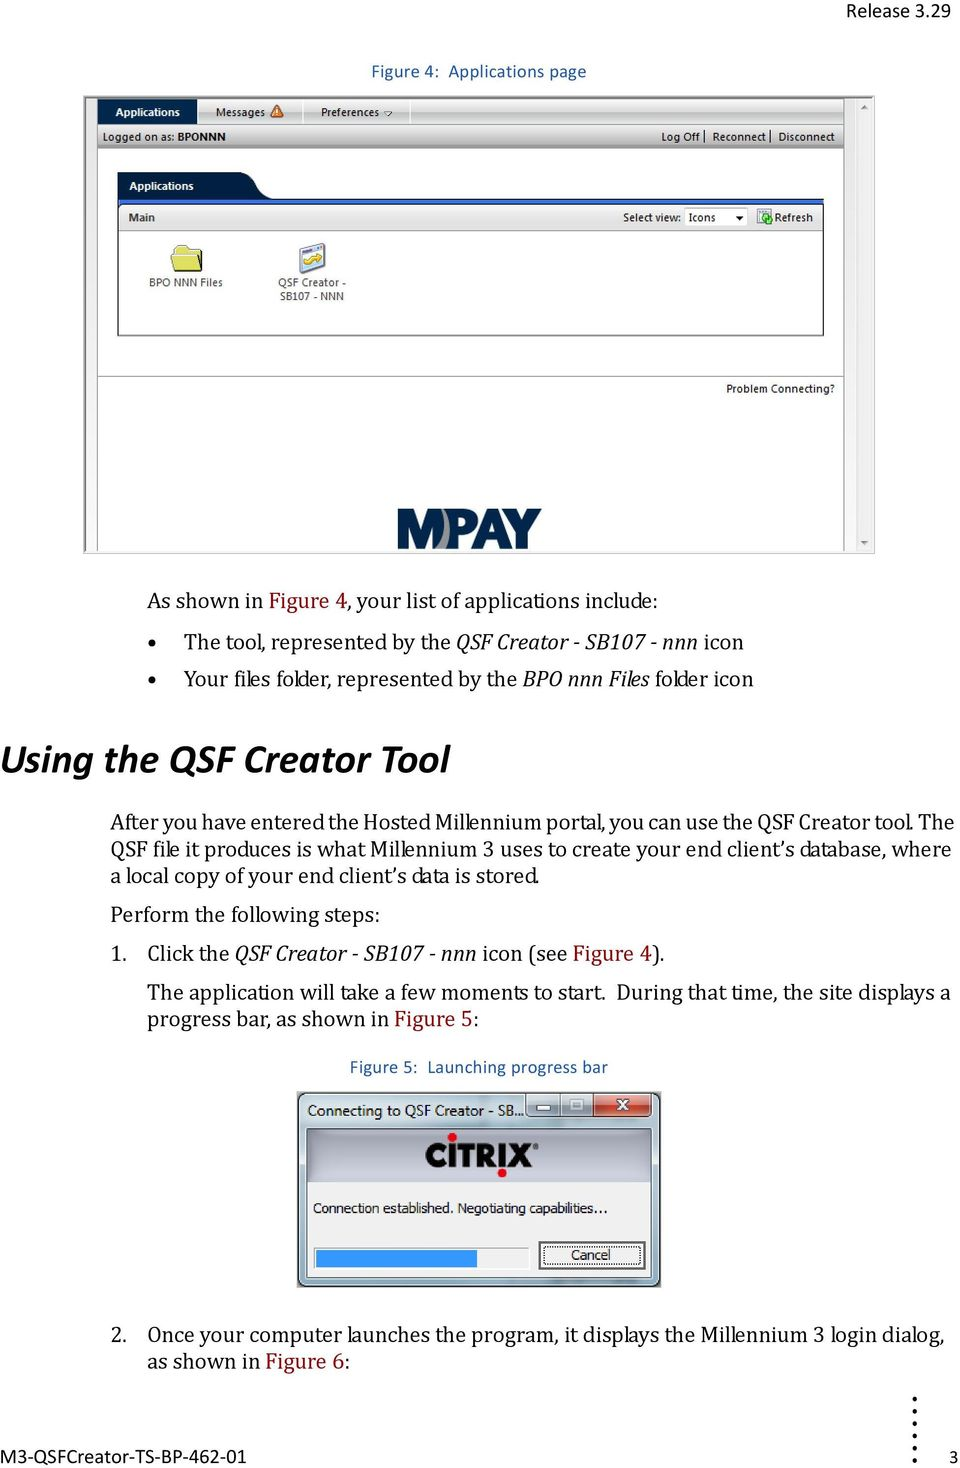 QSF Creator Tool  Task Sheet  Logging Into Hosted Millennium